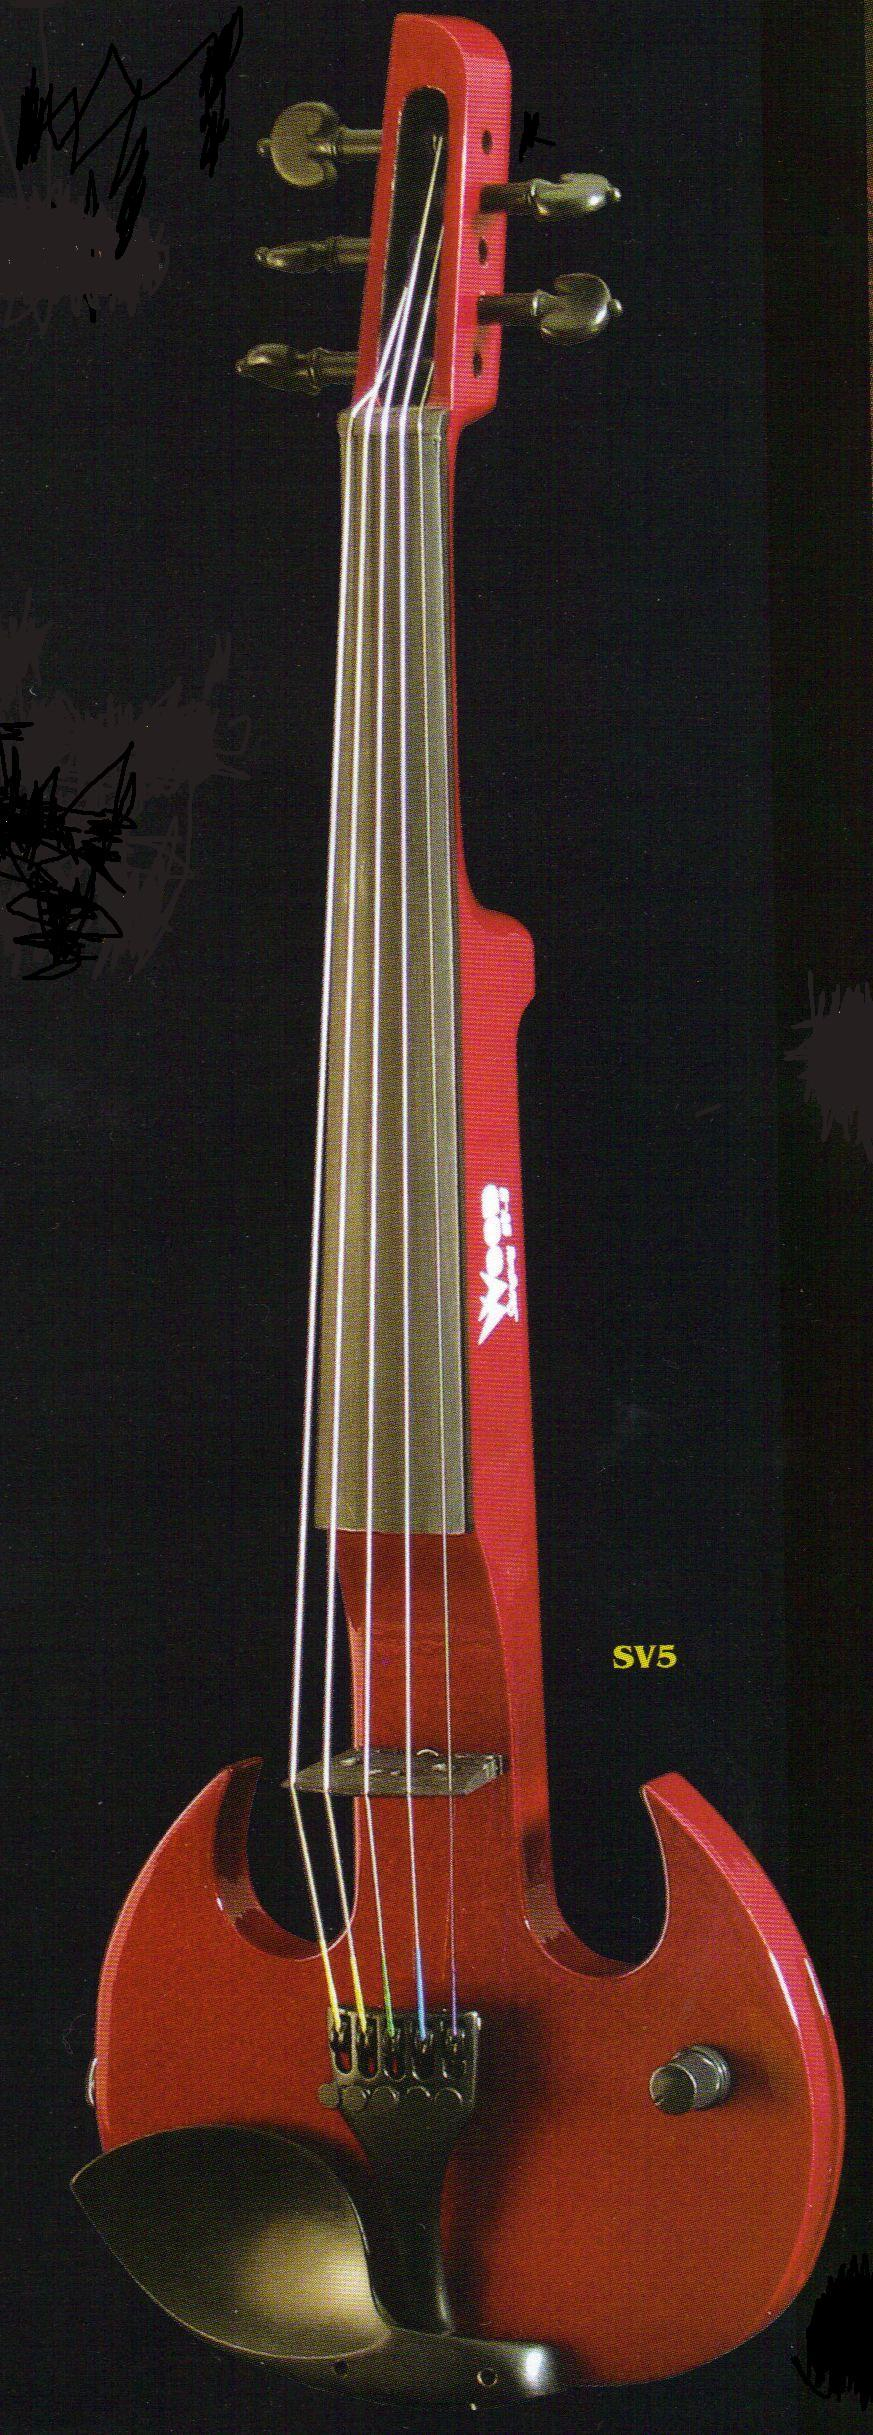 SV5 Stingray Electric Violin